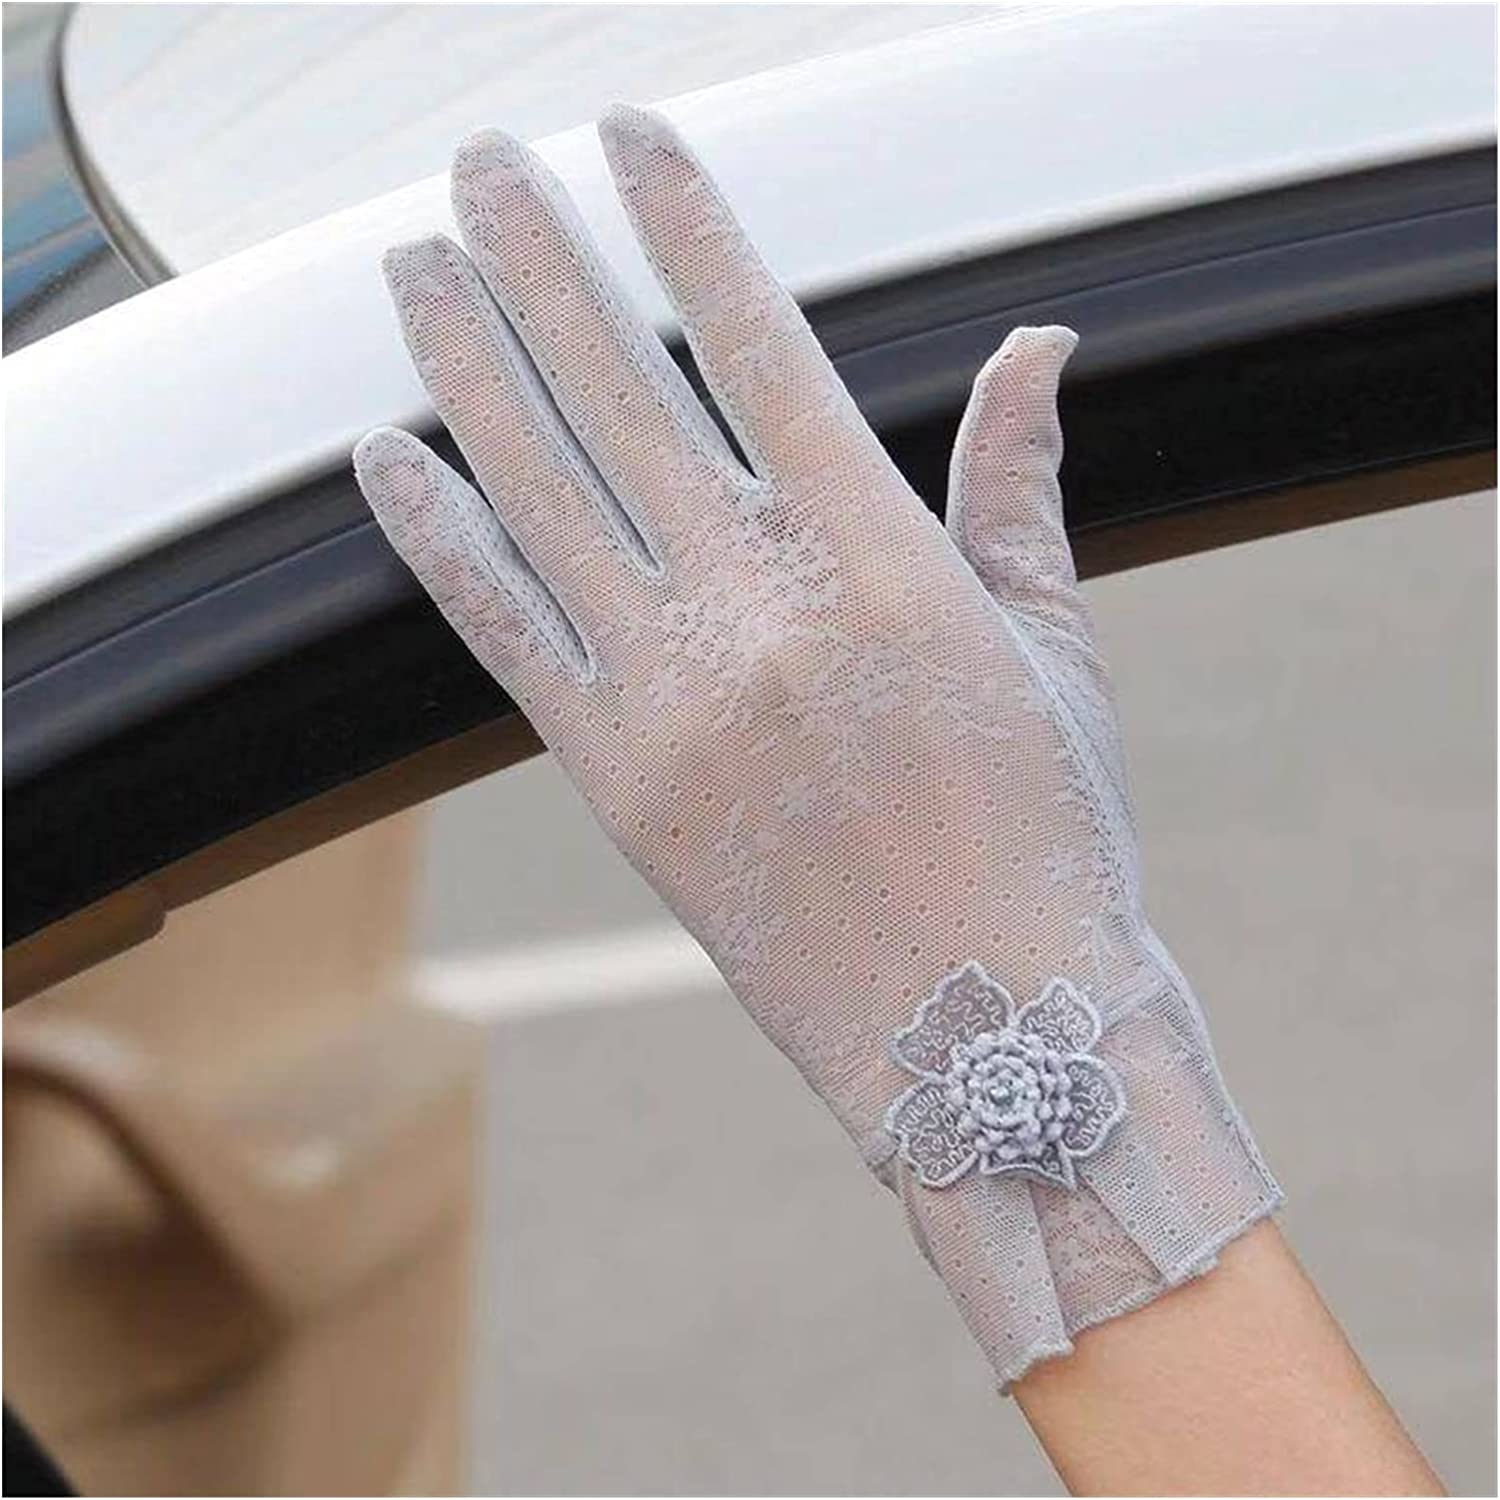 DMYONGLIAN Lace Gloves New Summer Women's Lace Gloves Ladies Anti-UV Anti-Slip Gloves Female Car Driving Gloves Women Accessories (Color : Gray1, Gloves Size : One Size)